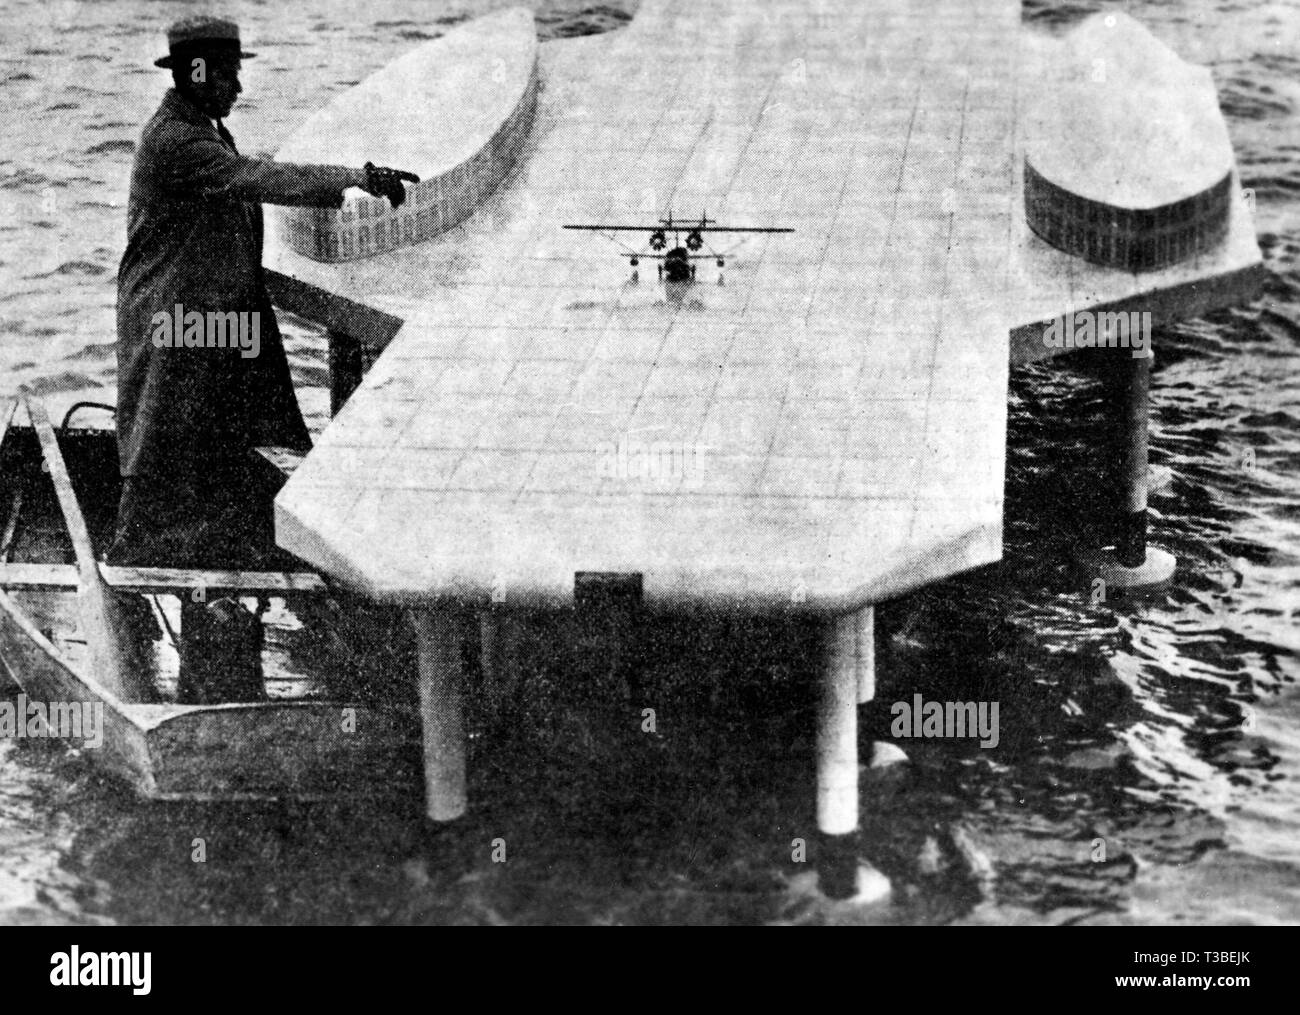 a model aircraft carrier, 1930 - Stock Image